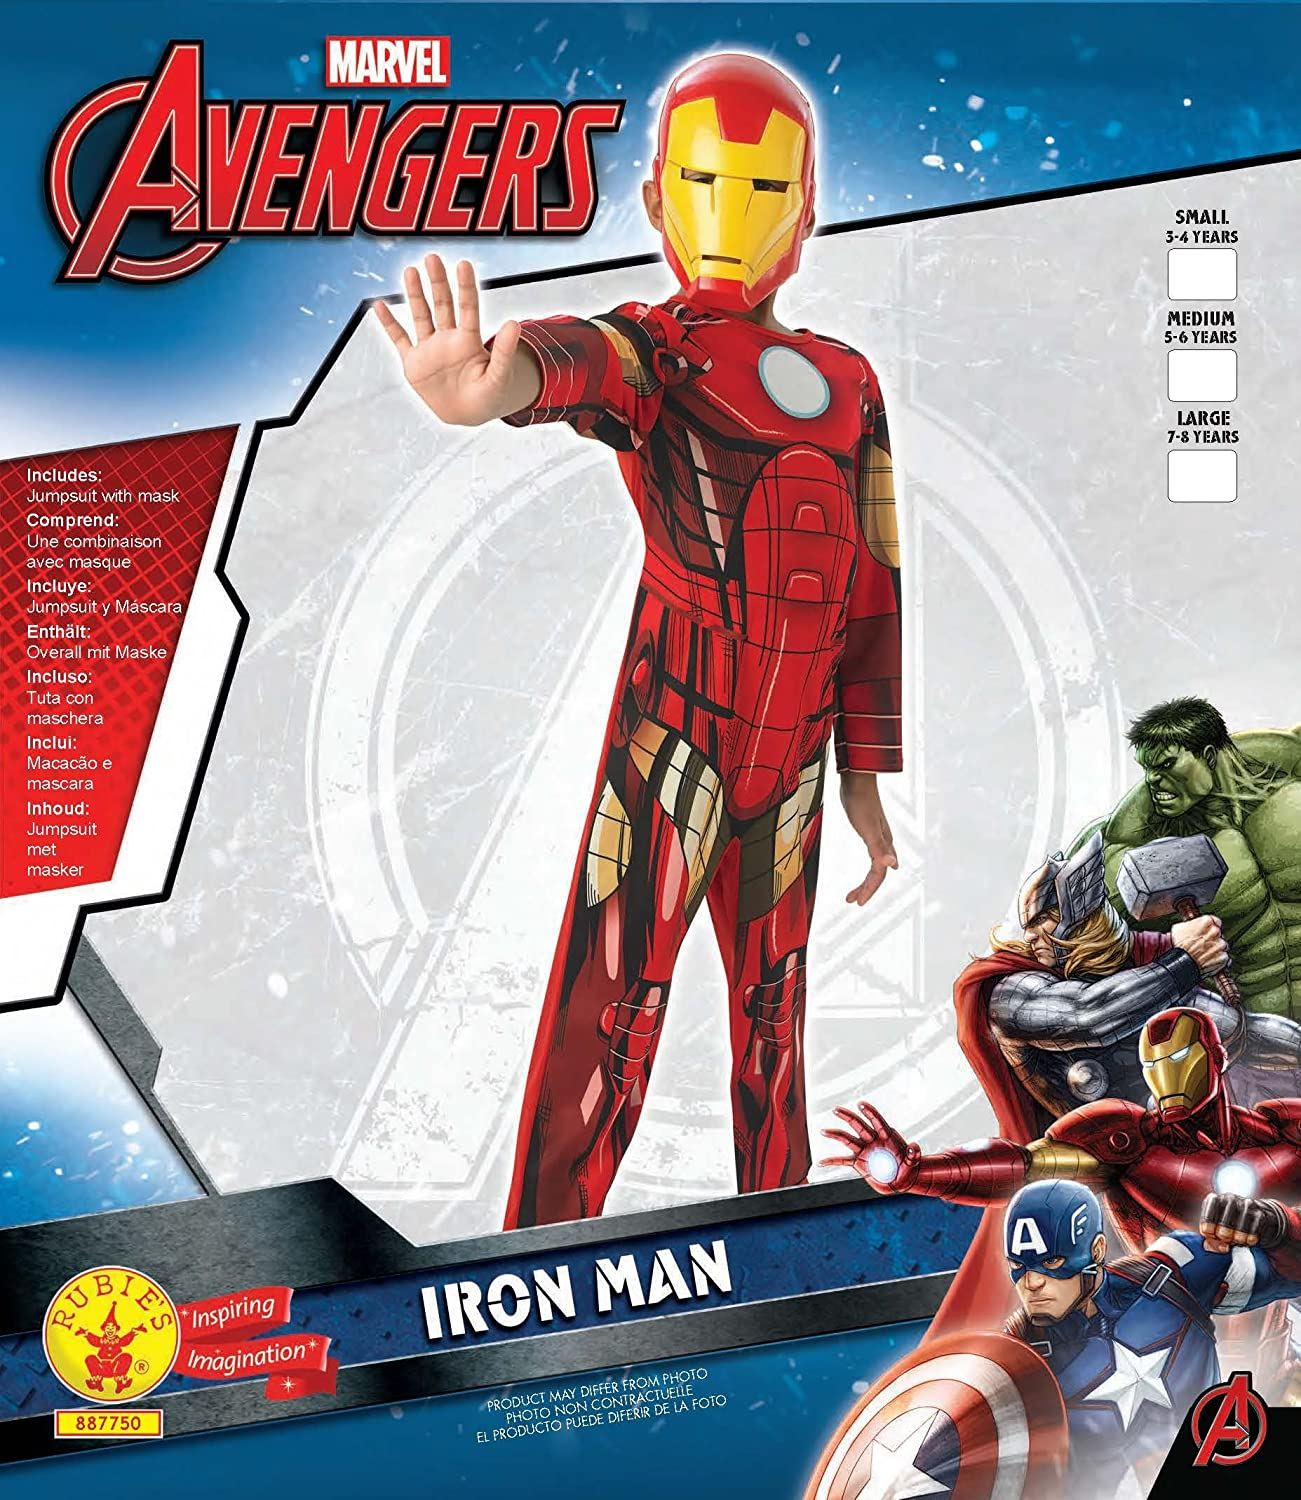 Amazon.com: Marvel Avengers Assemble Iron Man (Classic) - Kids Costume 7 - 8 years: Toys & Games